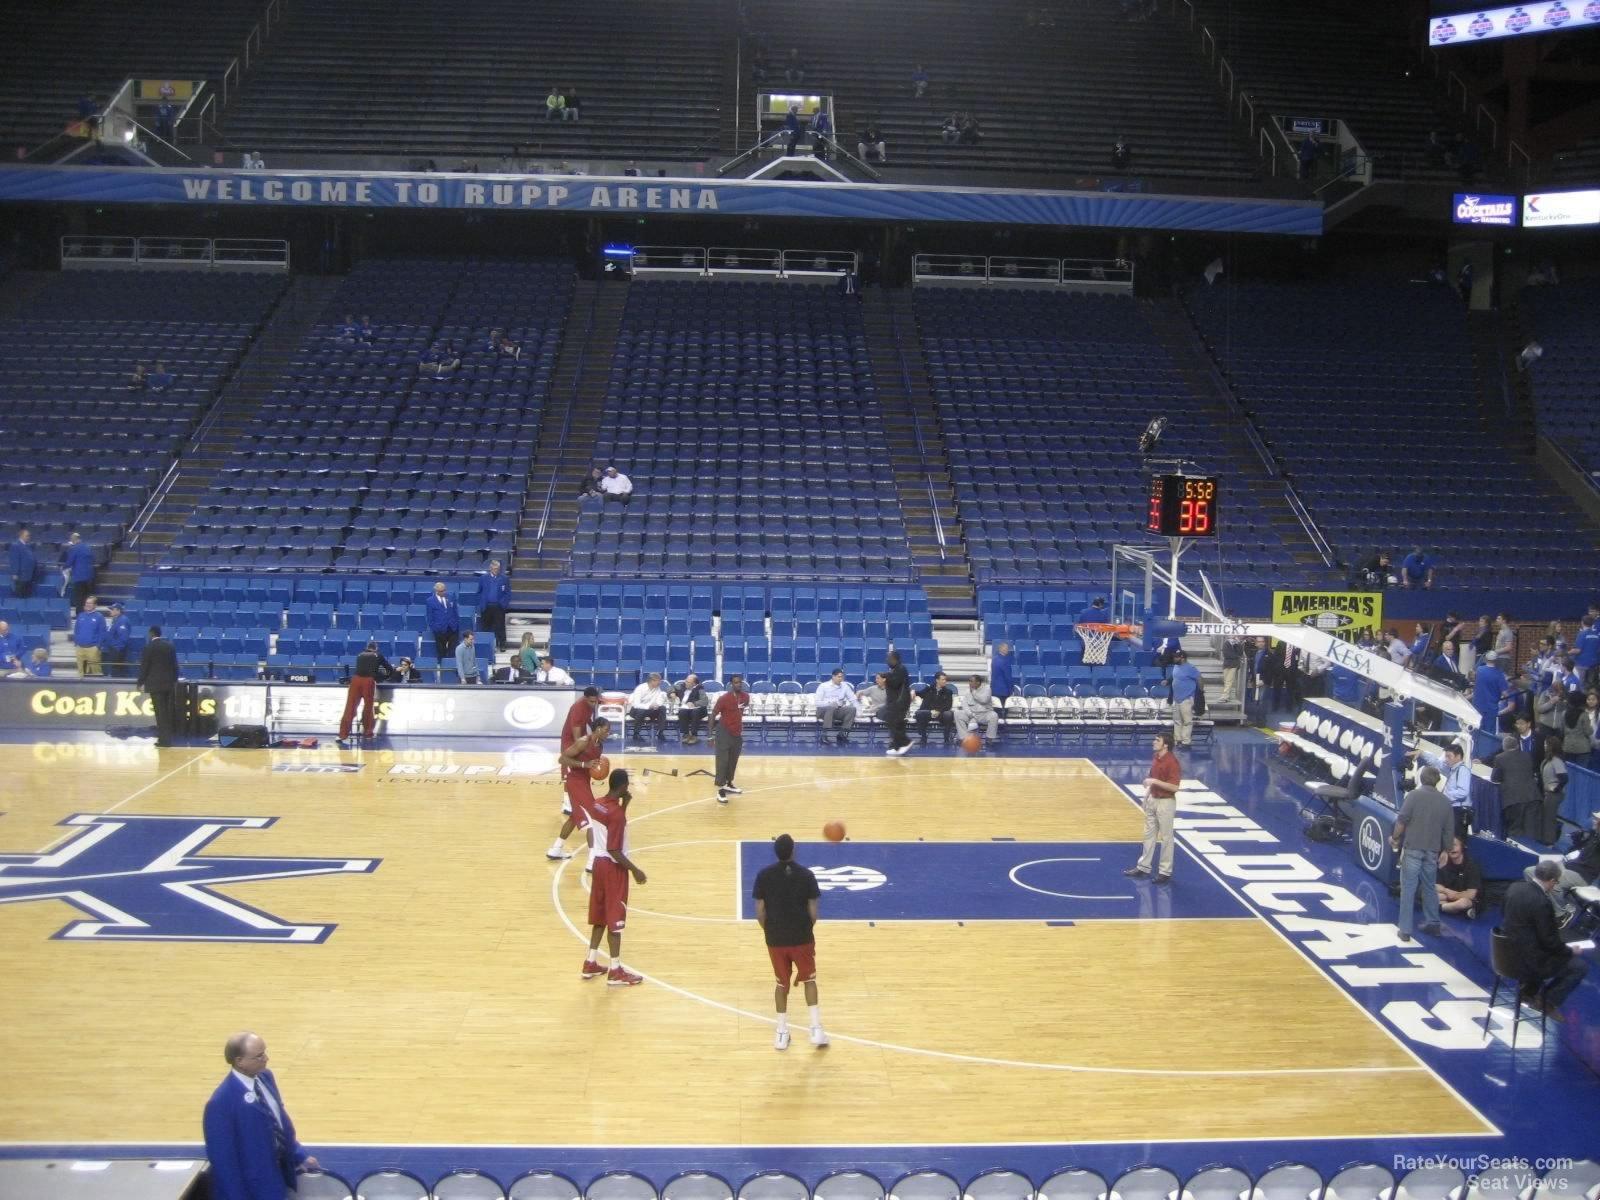 Seat View for Rupp Arena Section 13, Row F